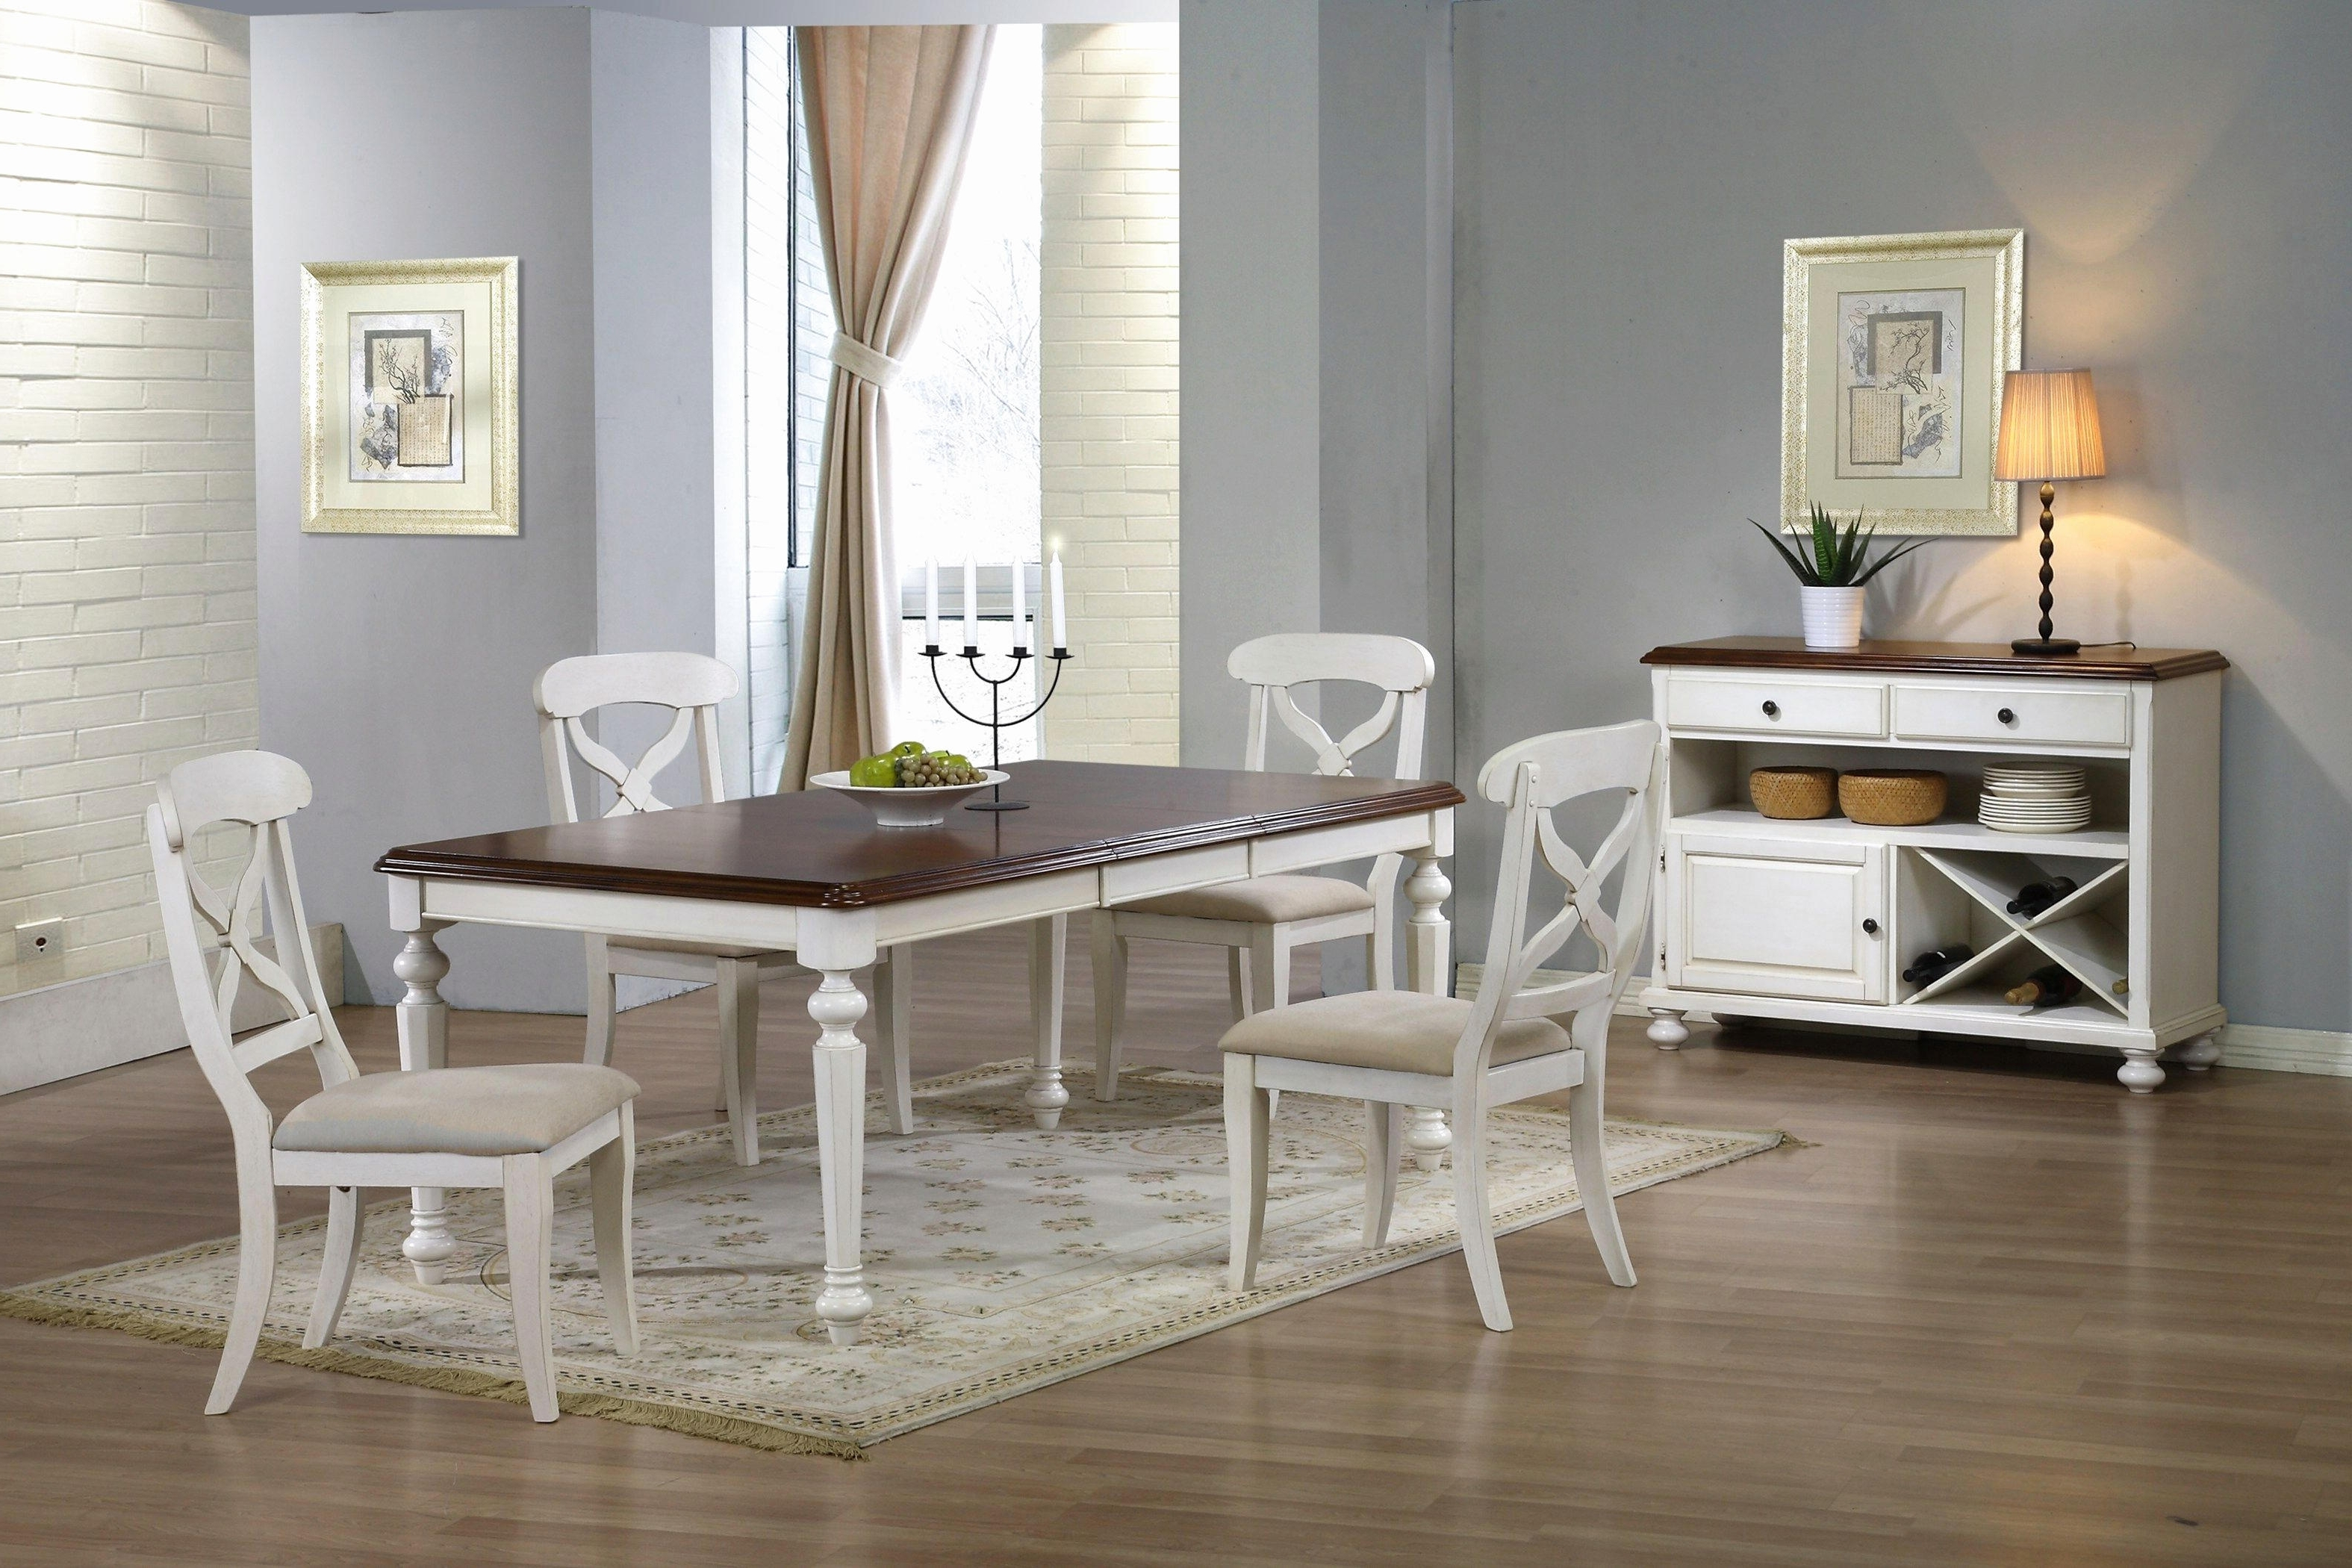 Gray Wood Chairs Awesome Chair Dinette Sets Tables Furniture 2017 With Regard To Most Up To Date Jaxon Grey 7 Piece Rectangle Extension Dining Sets With Wood Chairs (View 20 of 25)